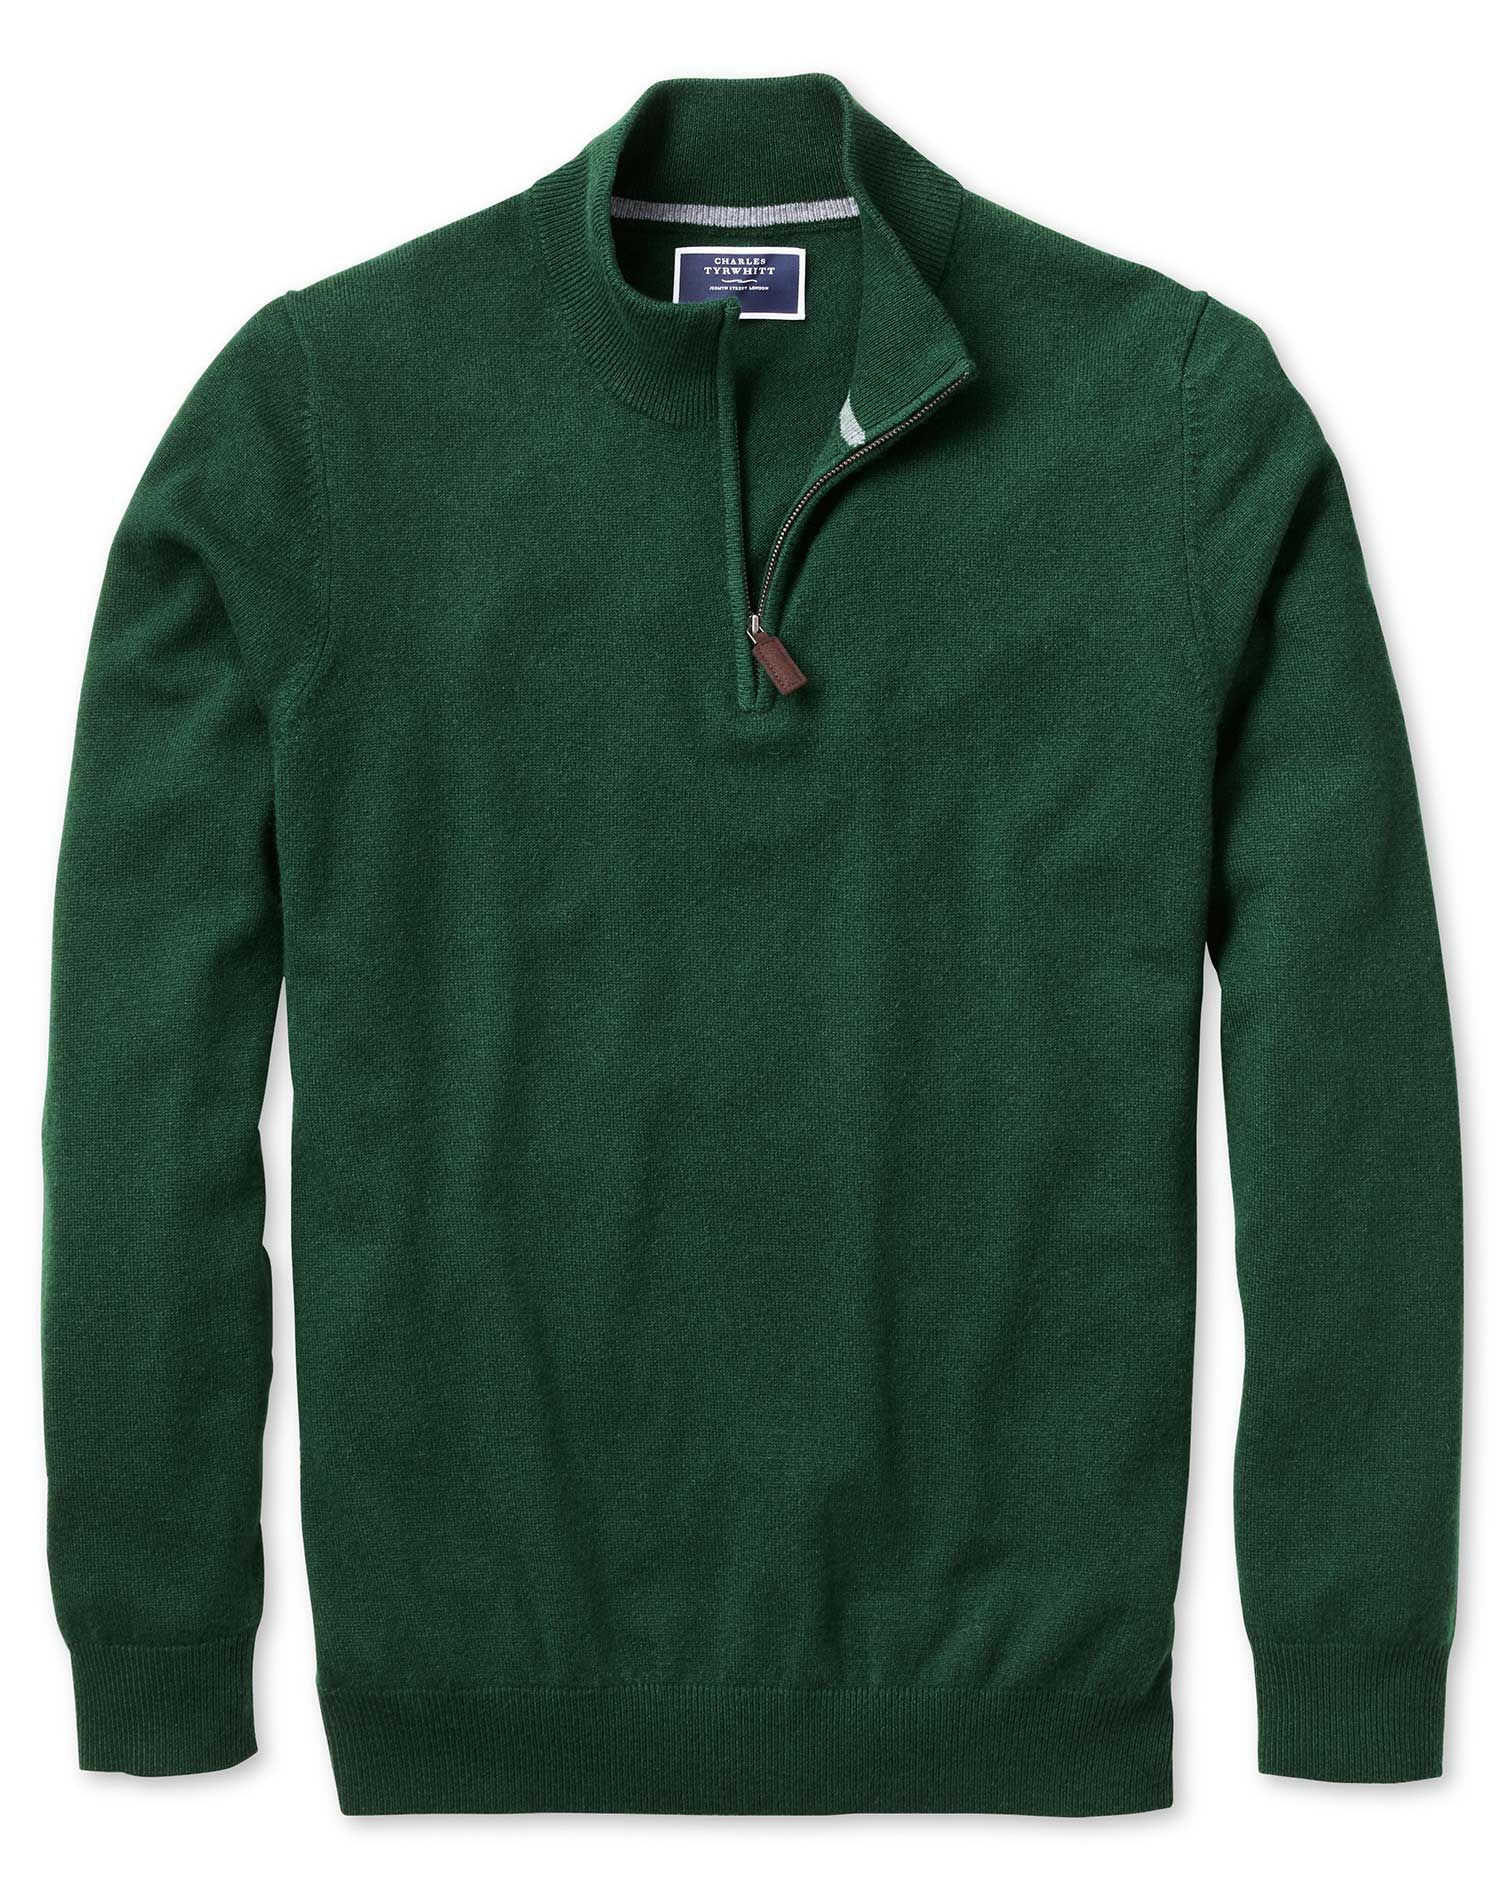 Green Zip Neck Cashmere Jumper Size XL by Charles Tyrwhitt